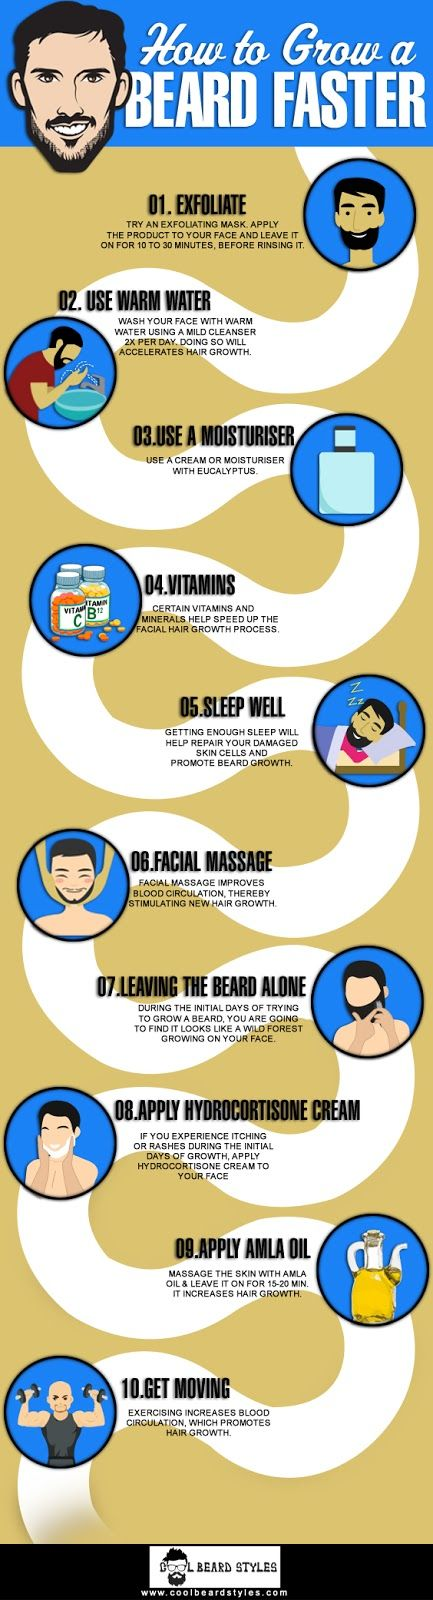 Learn How to Grow a Beard Faster? Follow the top 10 tips to grow a thicker beard super fast at home and the products needed. #beardfashion